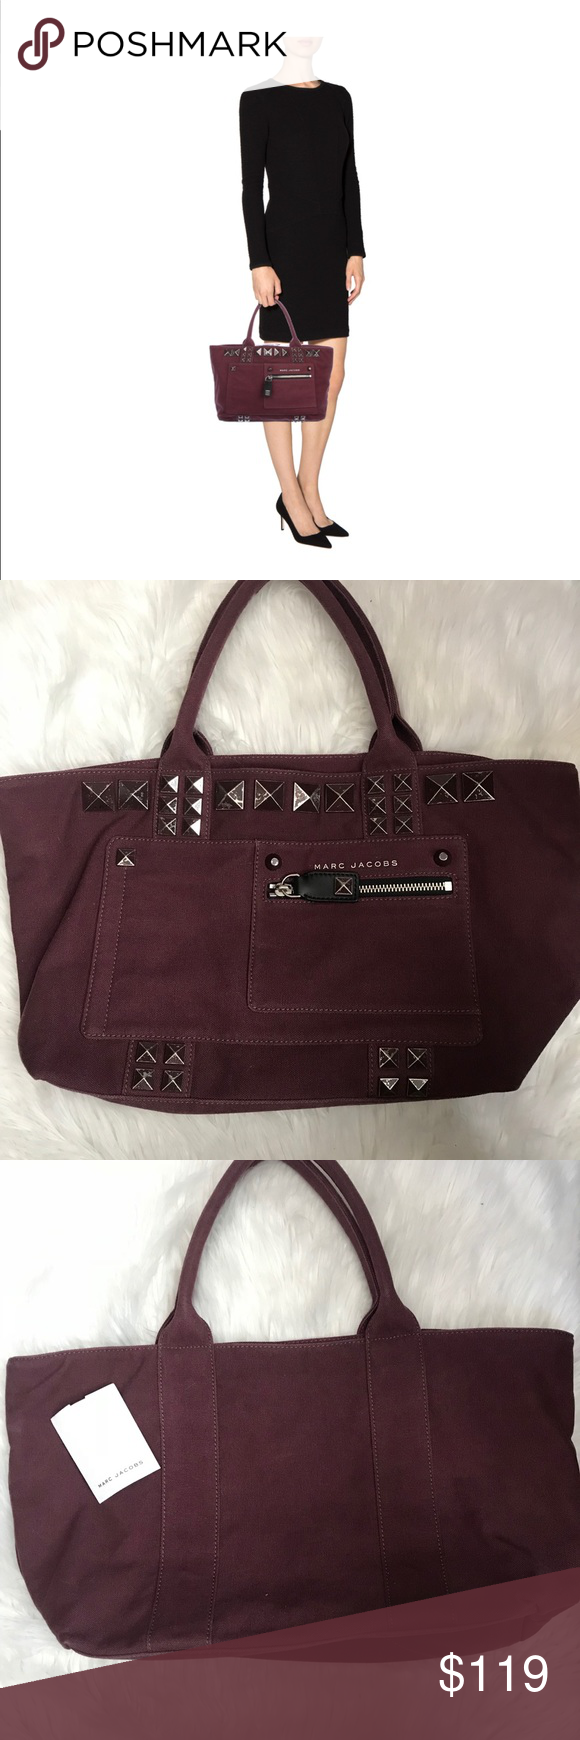 NWOT Marc Jacobs Chipped Studs Canvas Tote Clothes